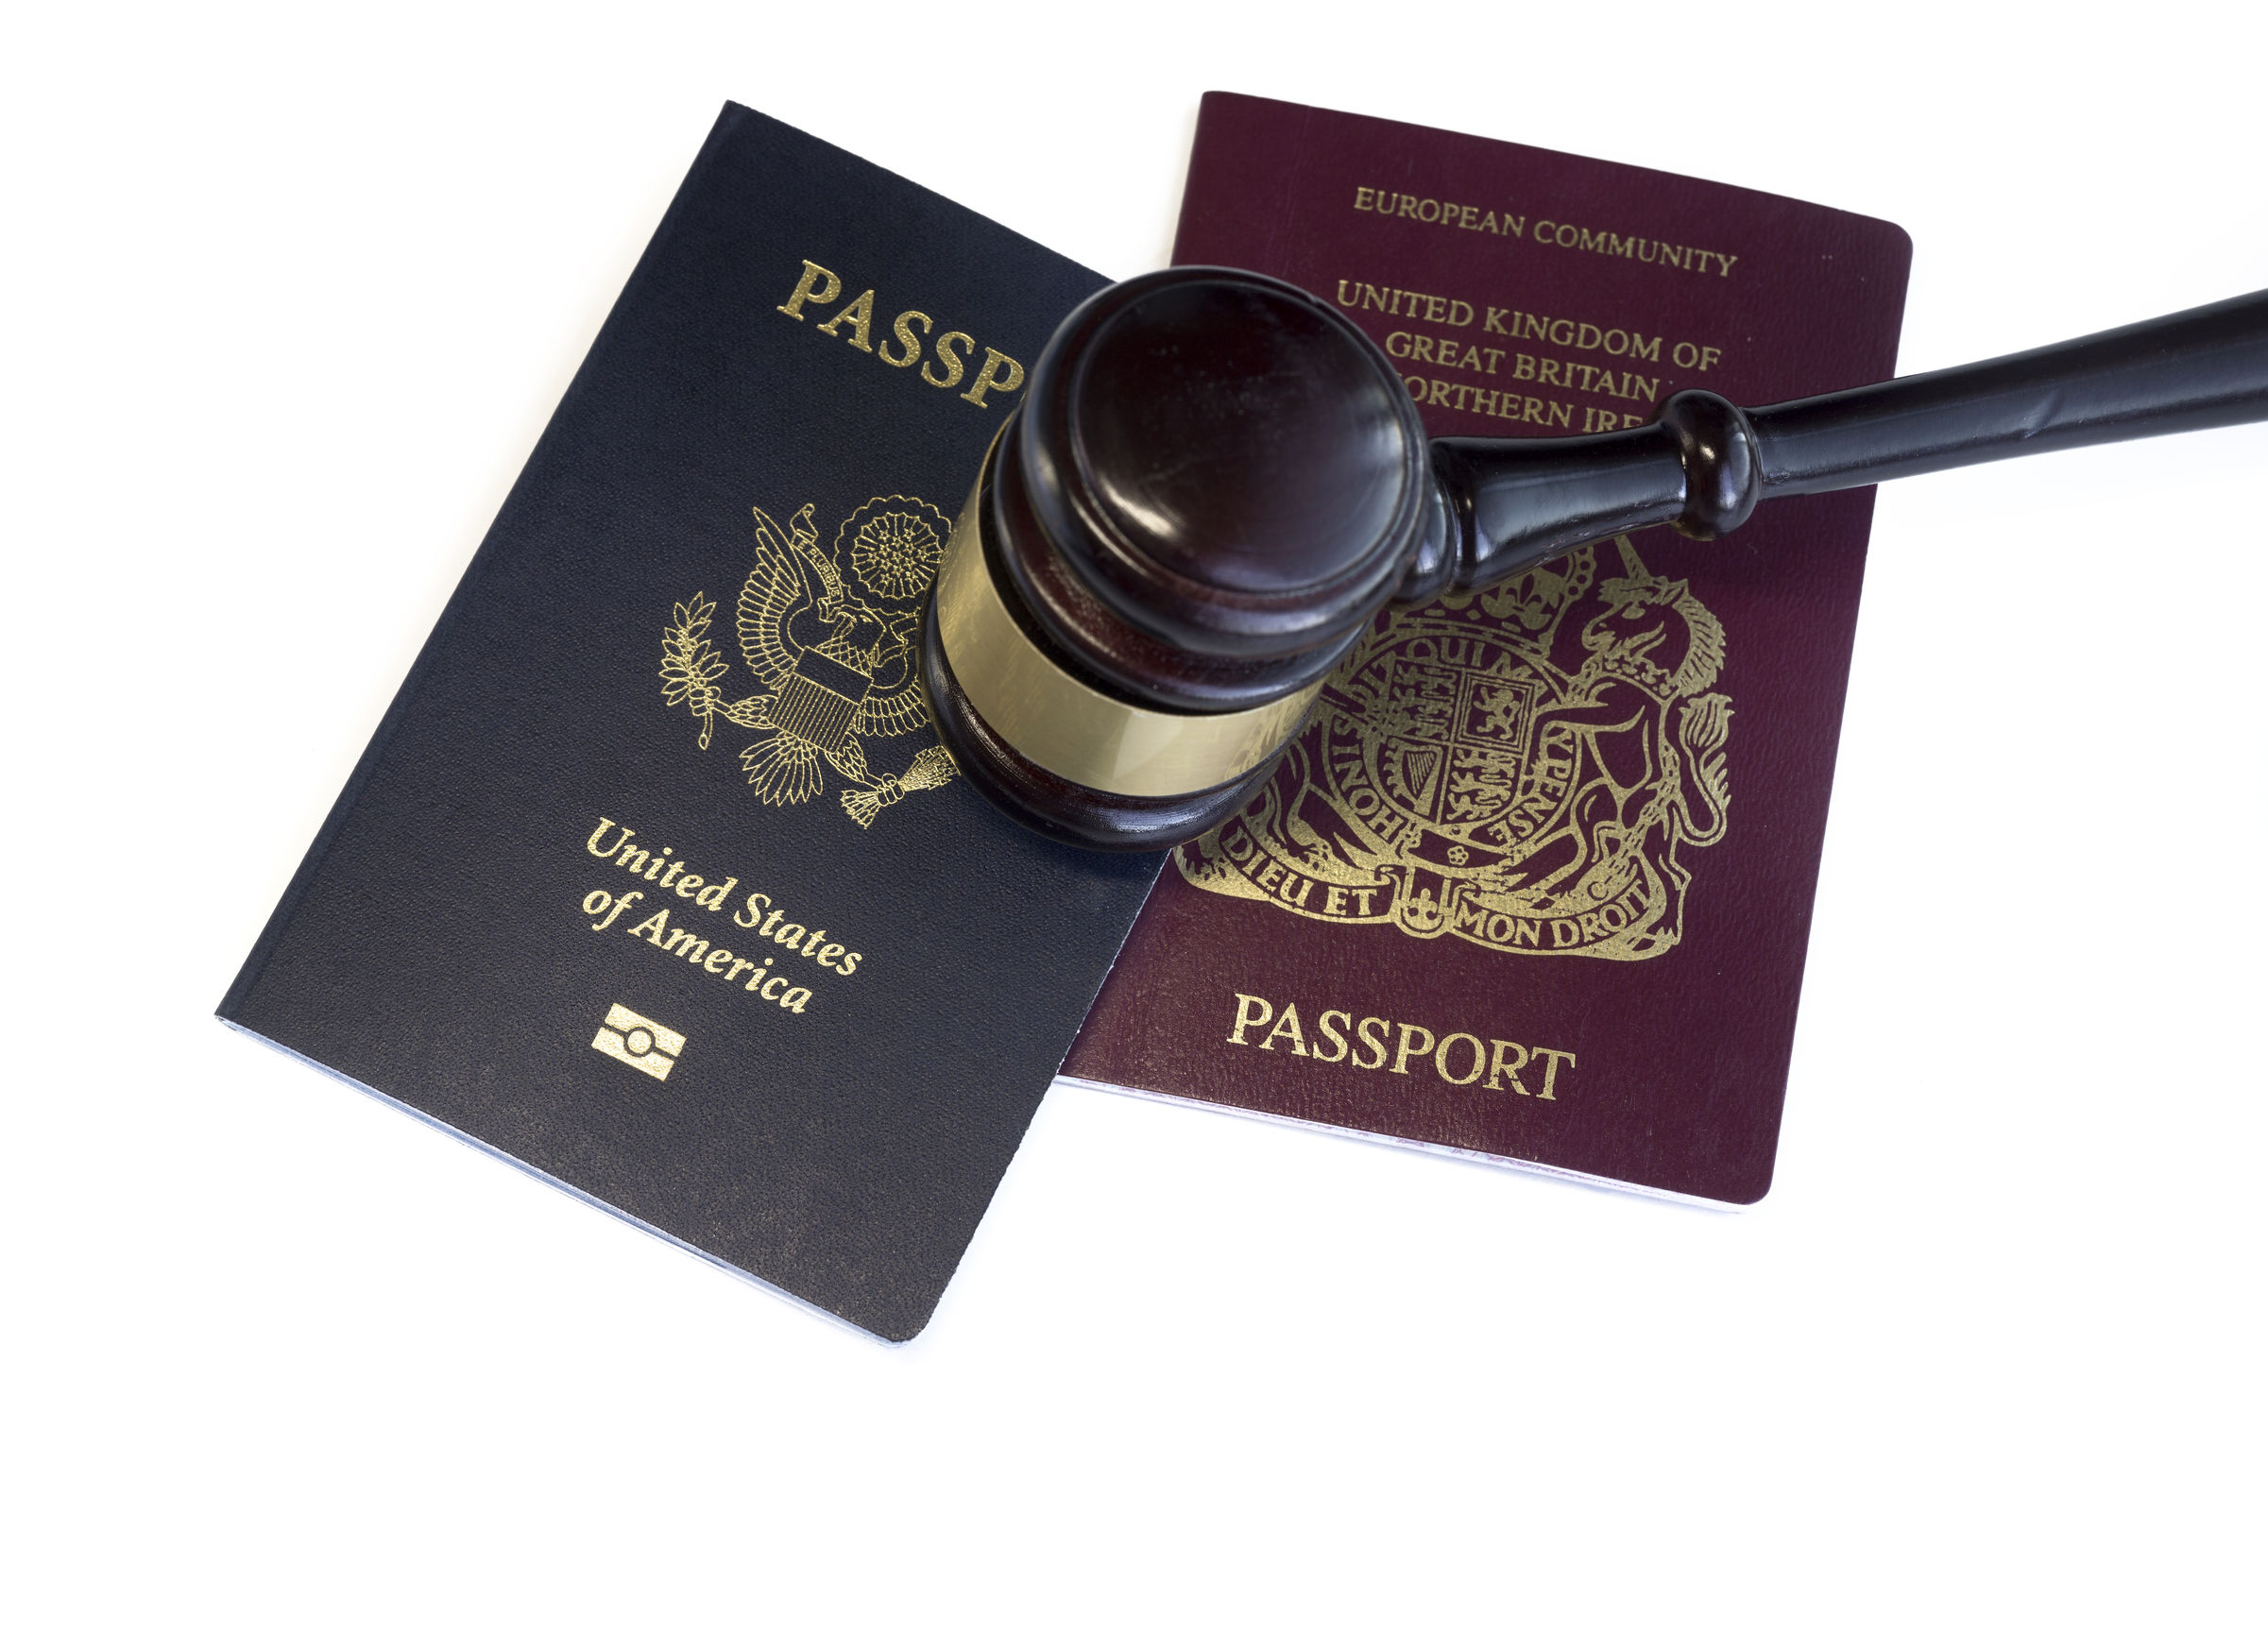 Another day, another dual citizenship issue